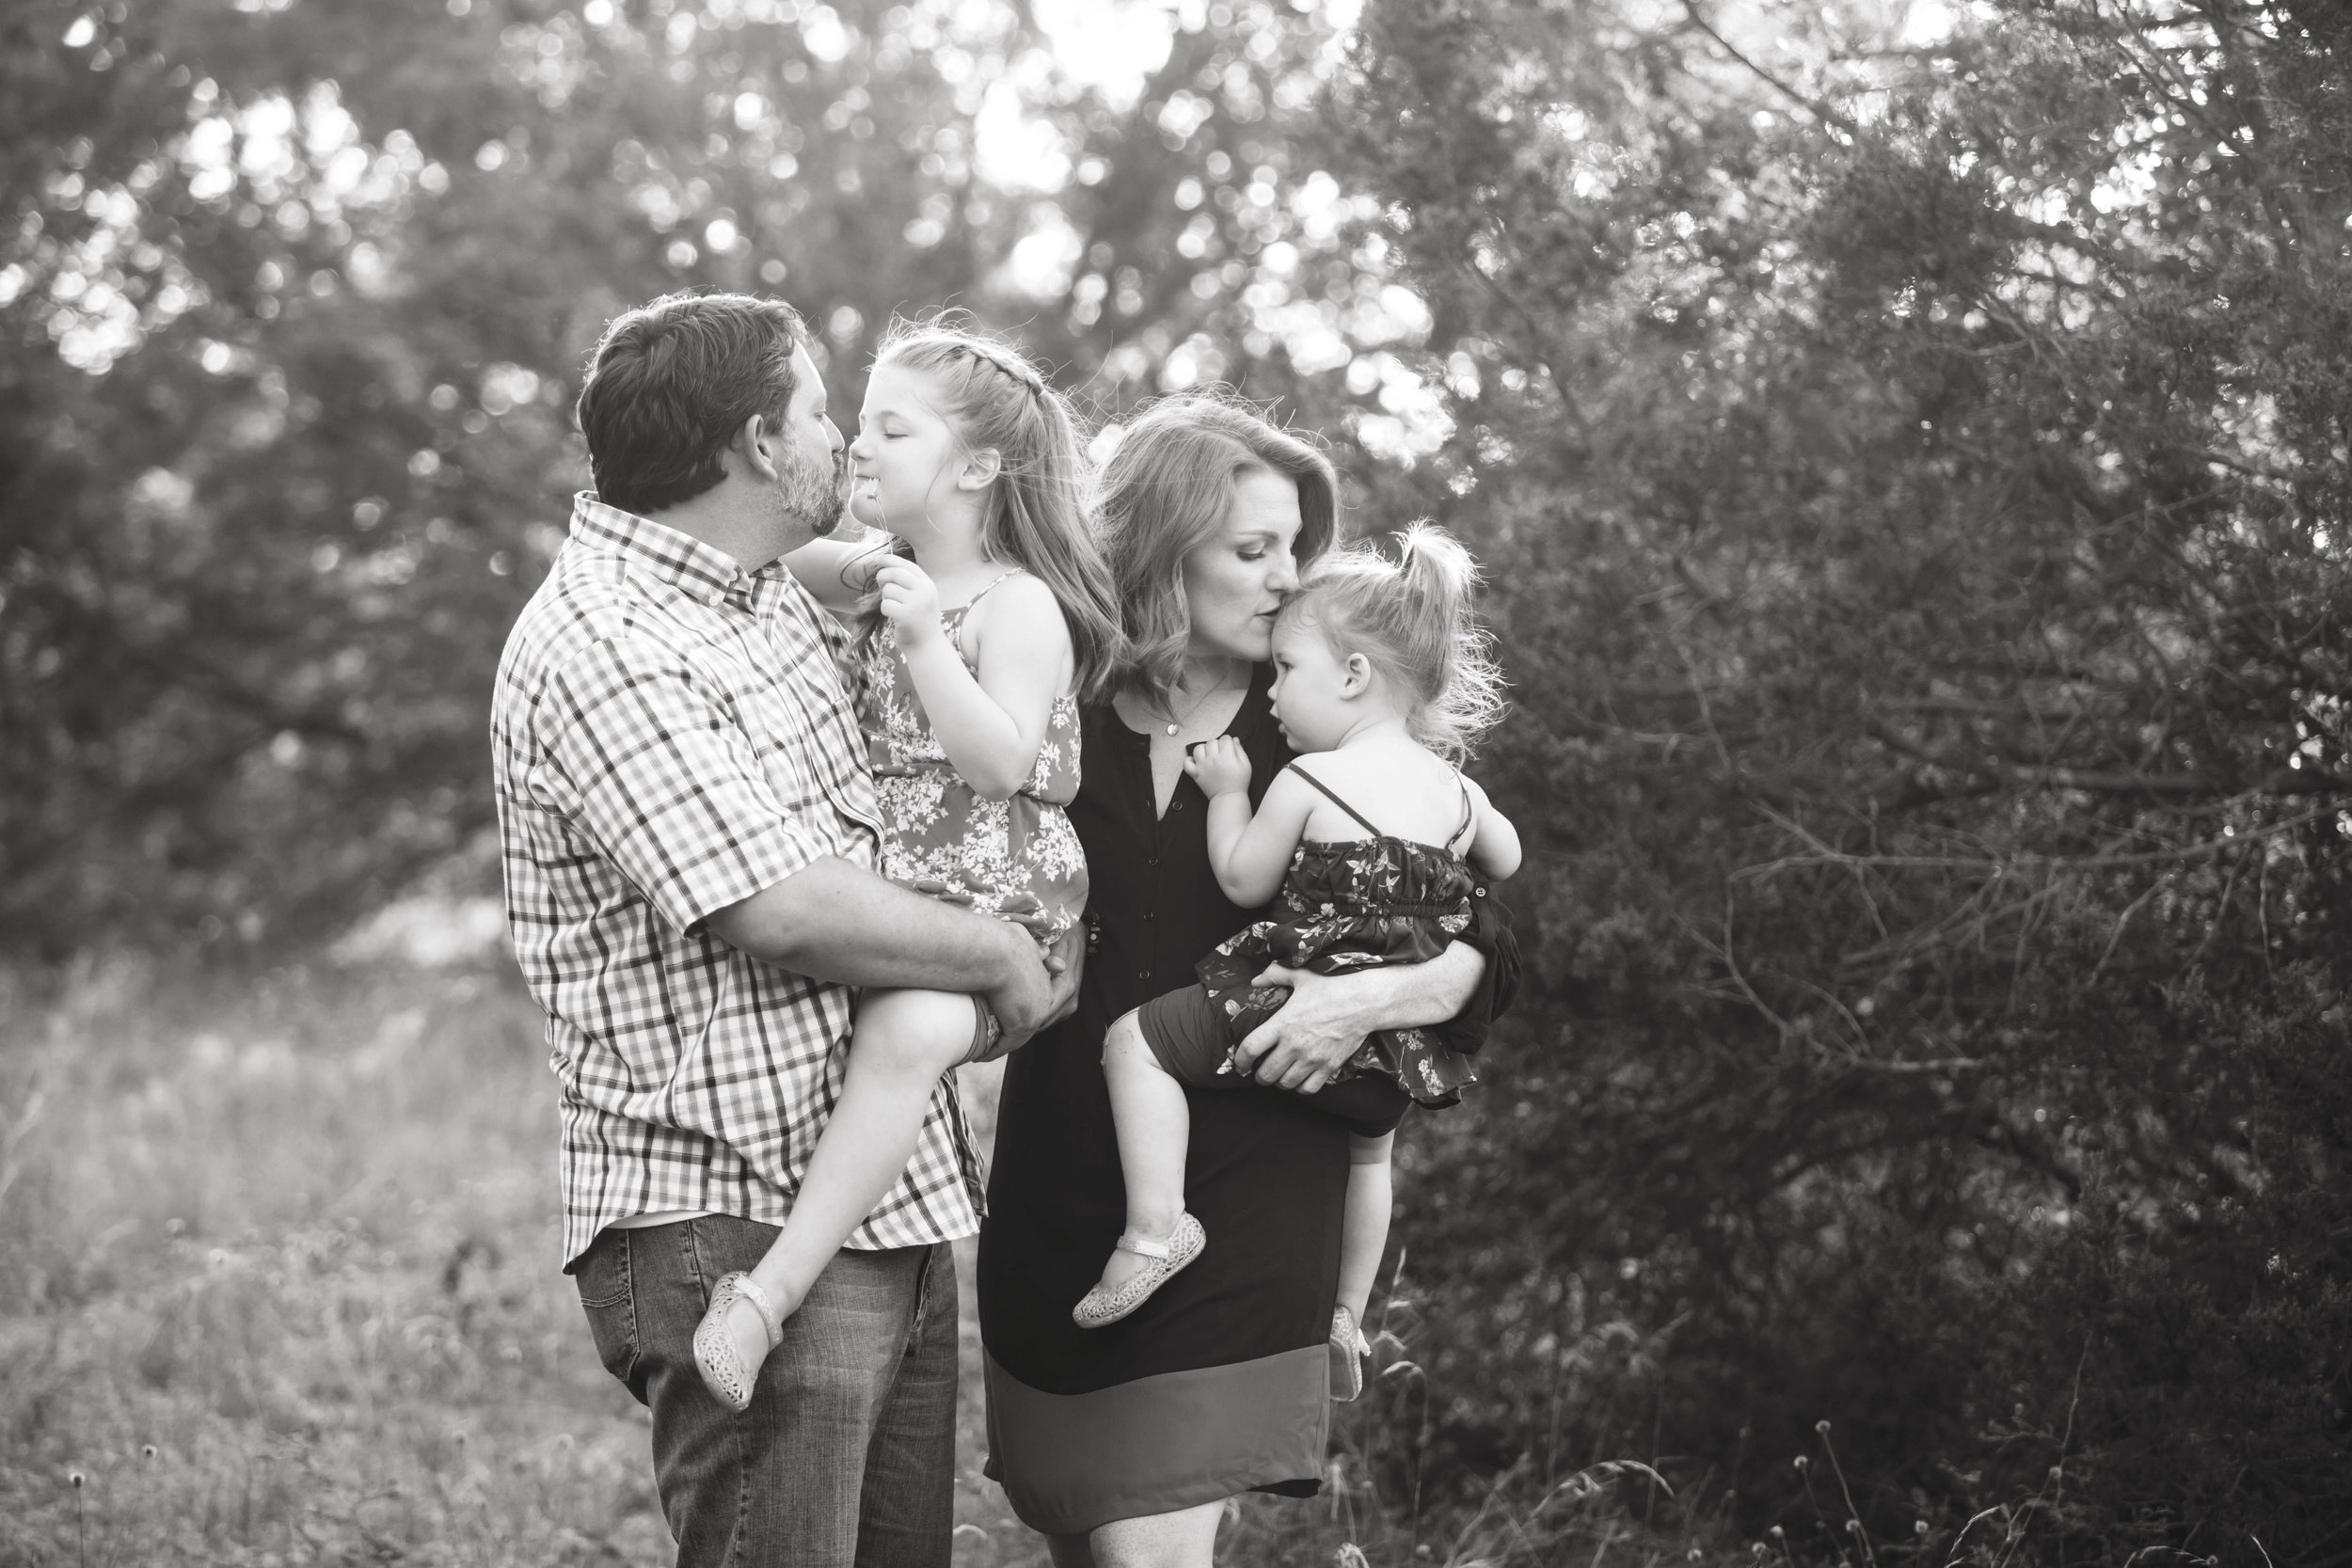 Marble_Falls_Family_Photographer_Jenna_Petty_16.jpg